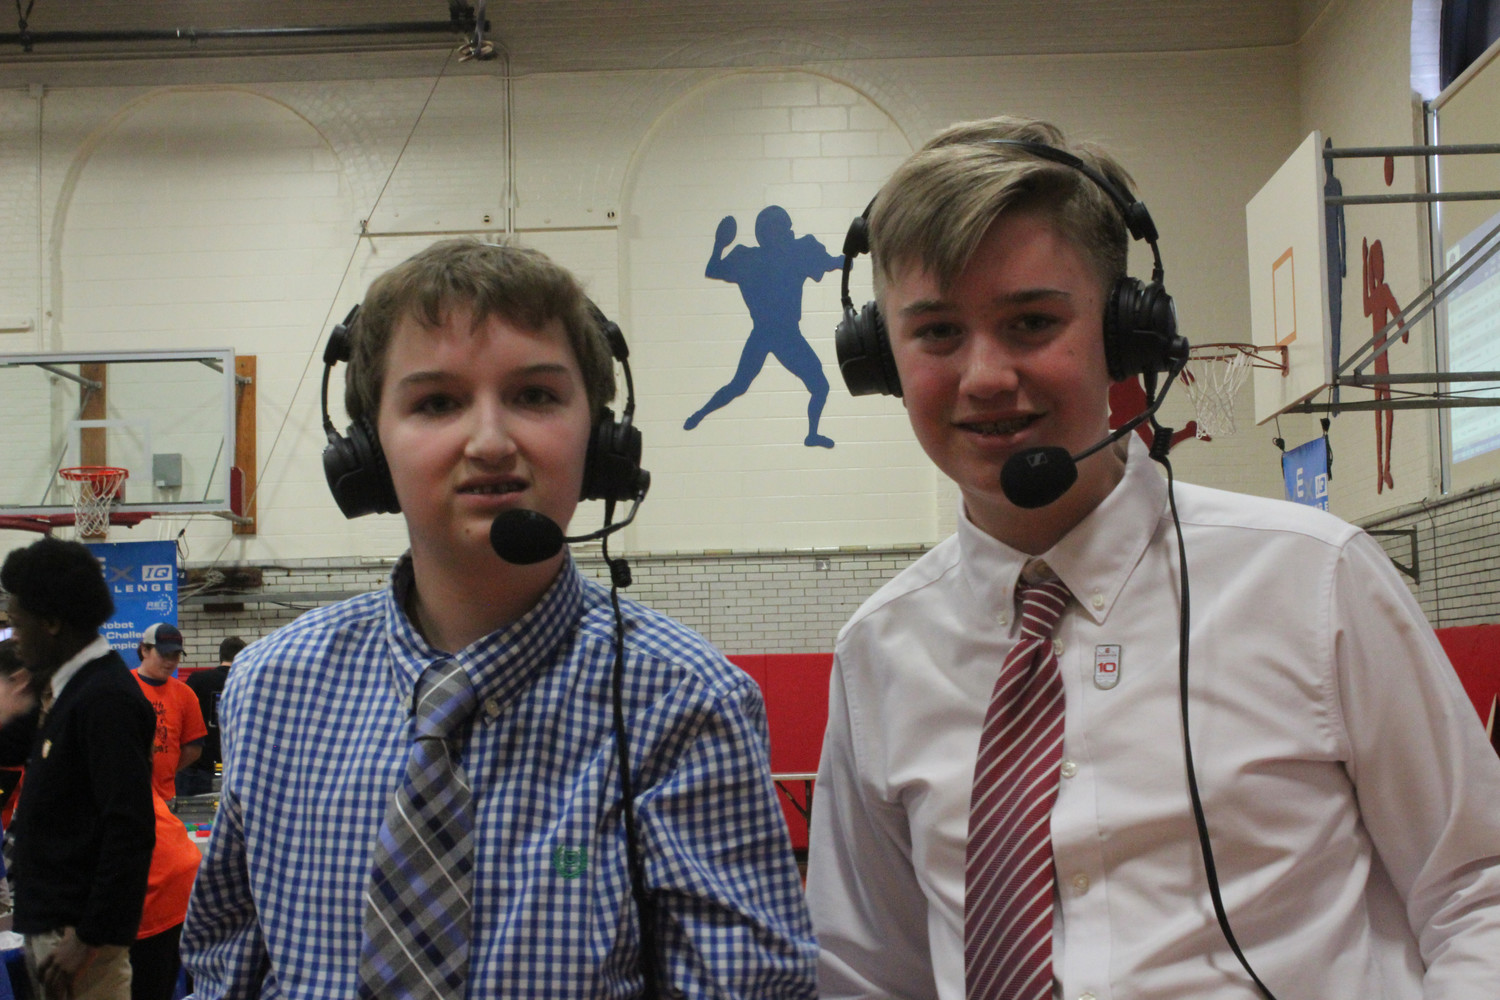 Seventh-grader Matthew Eckrich, left, and eighth-grader Jack Cashman called the competition from the sidelines for Channel 36.